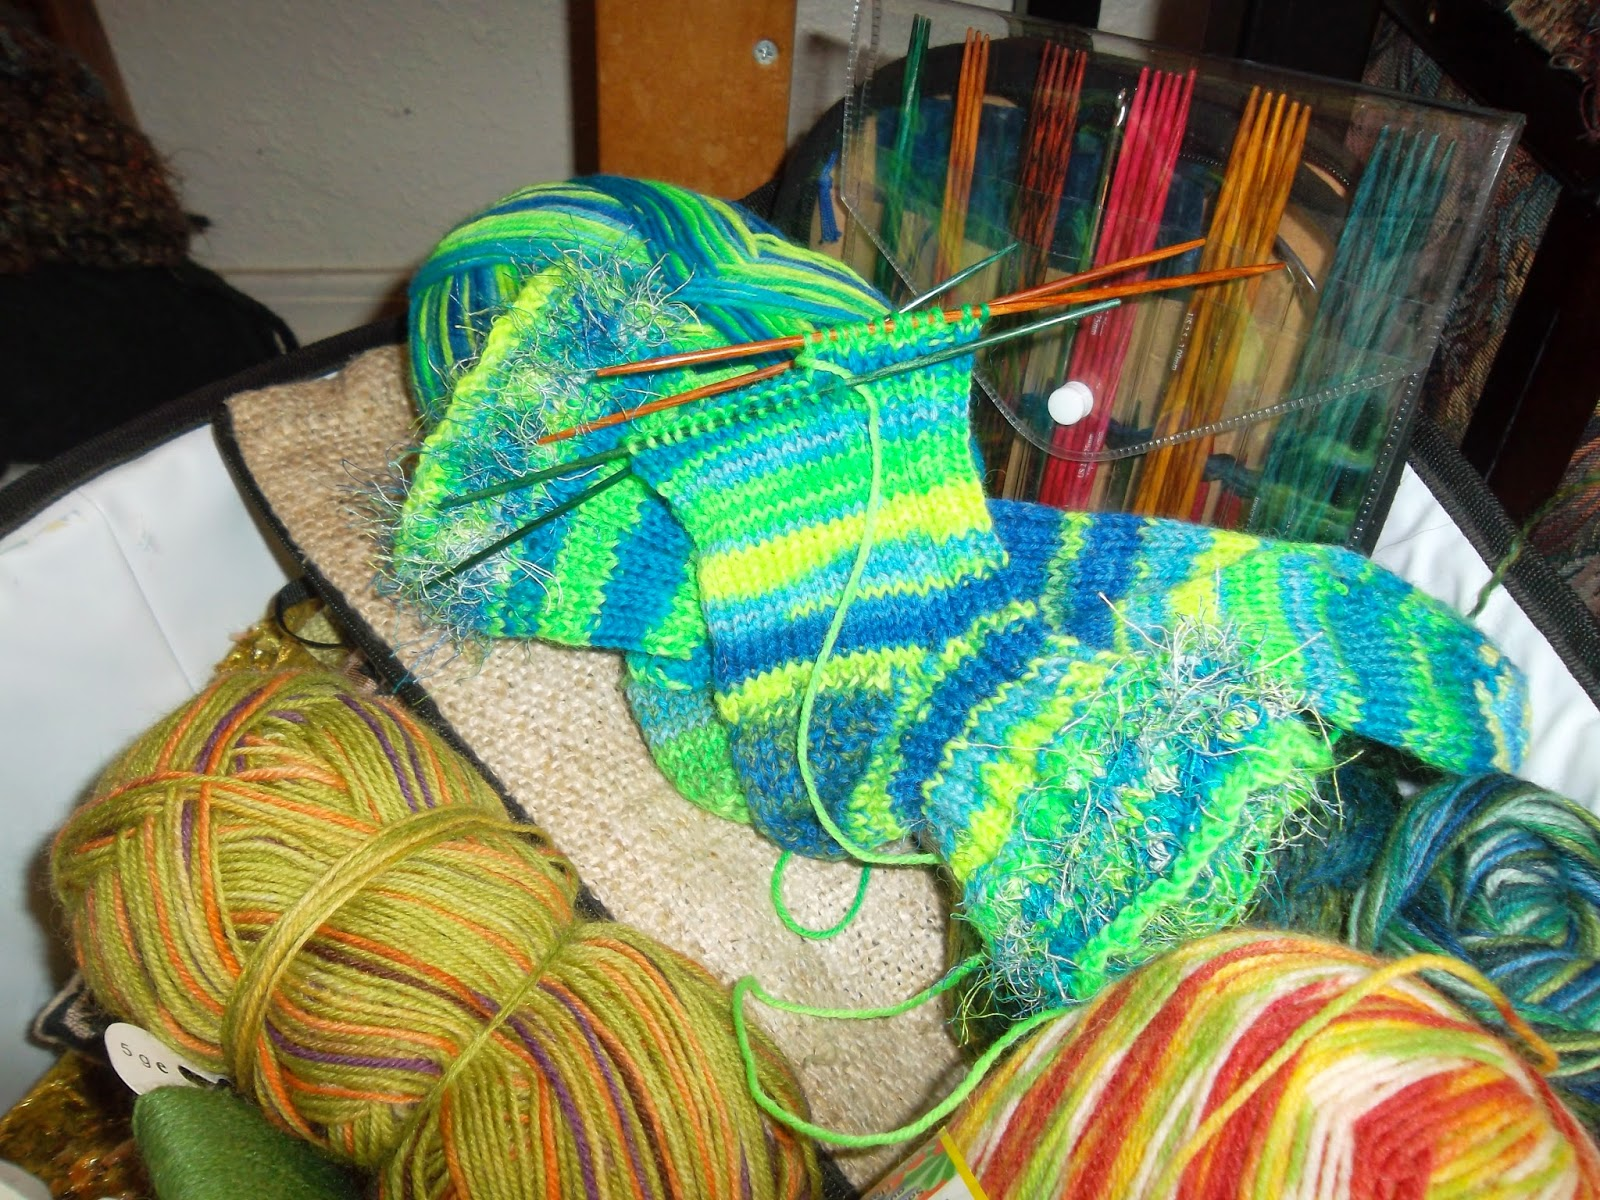 Neon yellow, green and blue-striped socks on double-pointed knitting needles, in a basket with other skeins of yarn and a package of double-pointed needles.